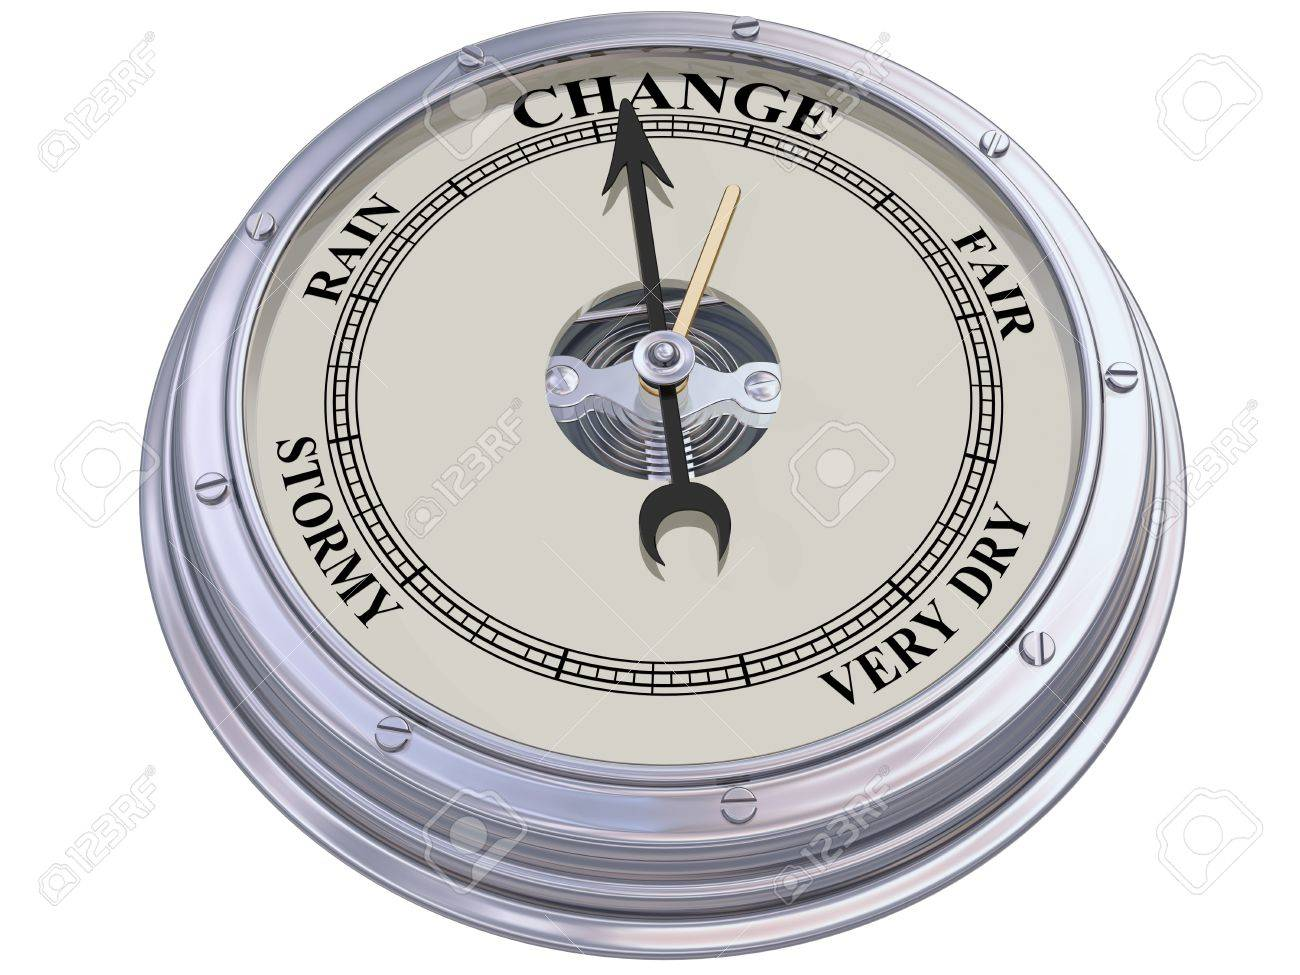 Isolated illustration of a barometer indicating changing conditions Stock Illustration - 14256131